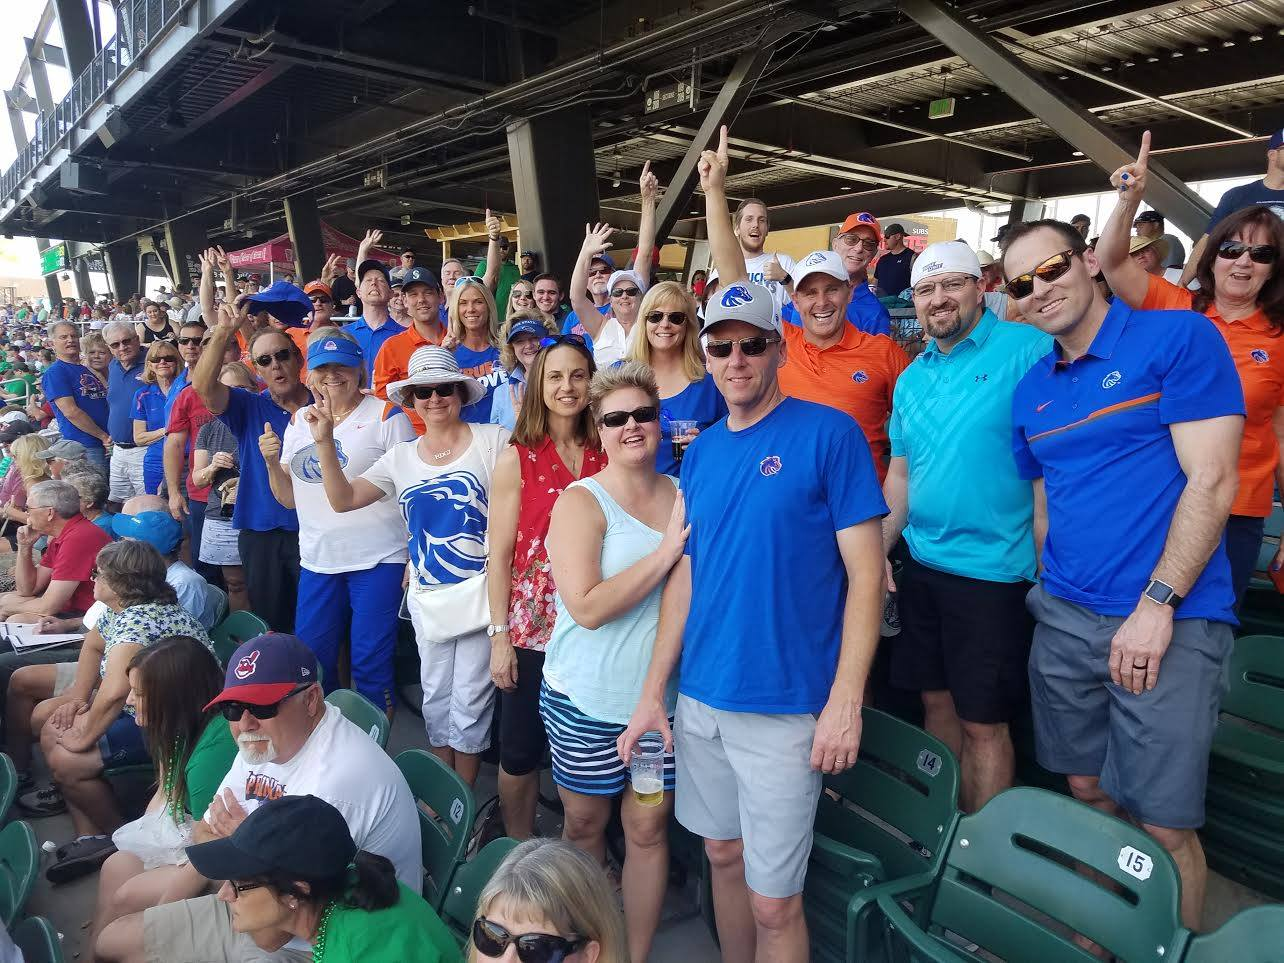 Boise State Fans at Baseball game